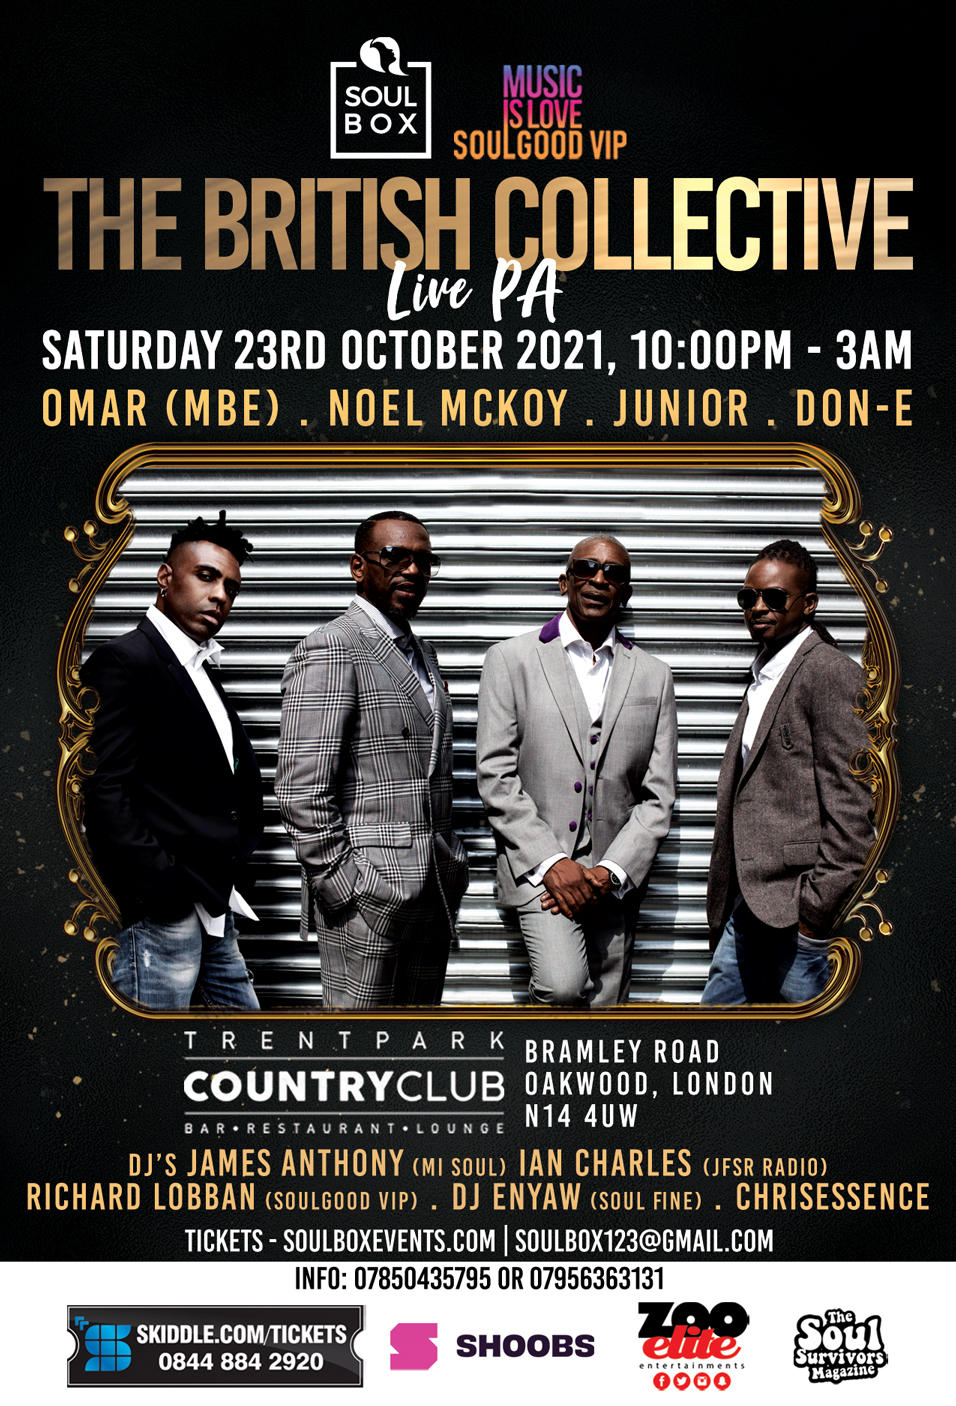 SoulBox & Soulgood VIP presents The British Collective Live PA ticket